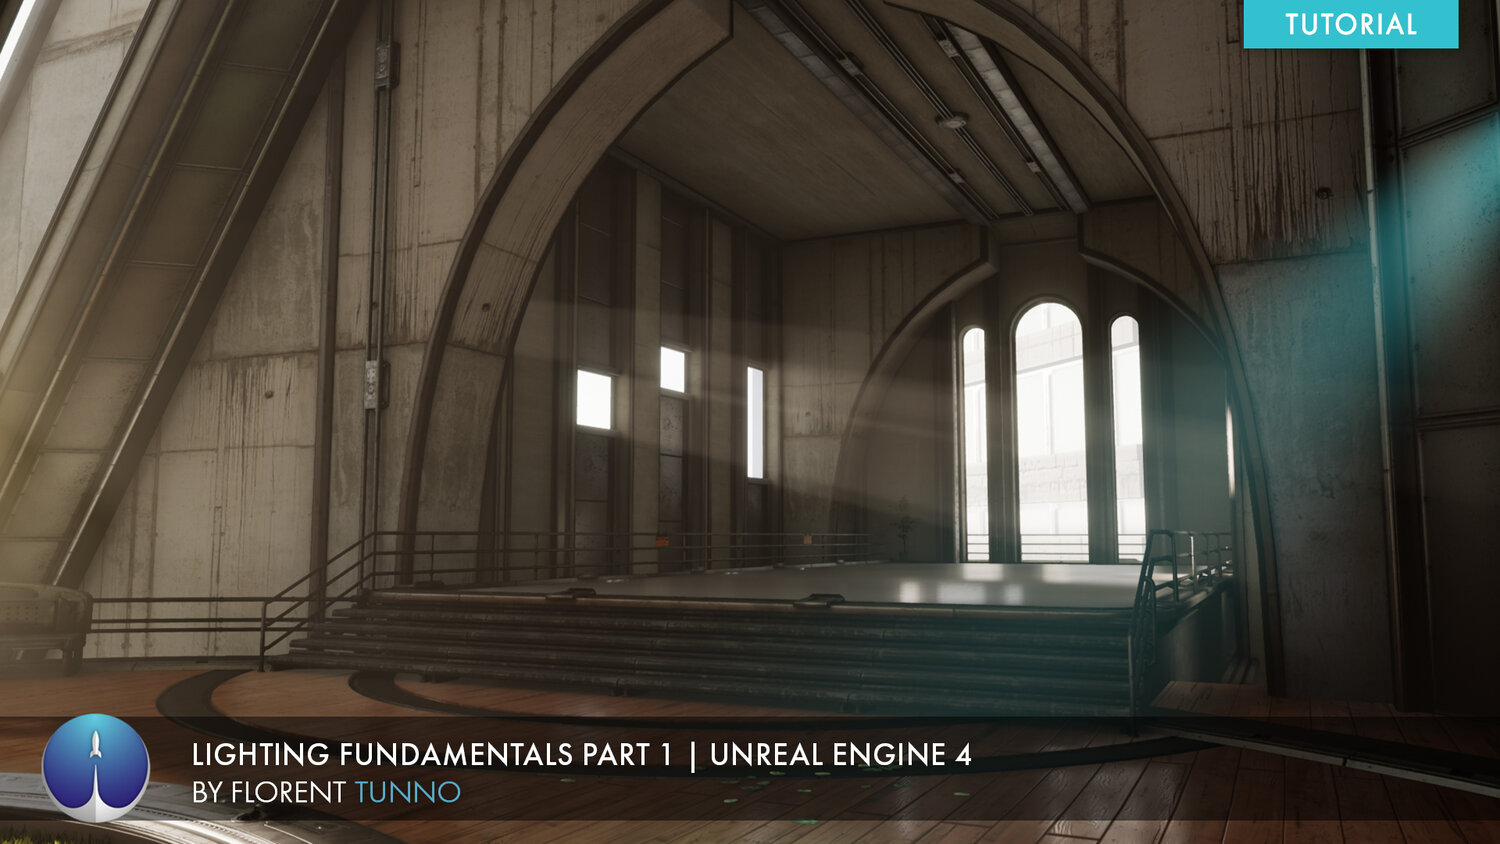 Unreal Engine 4 Lighting Fundamentals Part 1 | FLorent Tunno — Expe... - Experience points